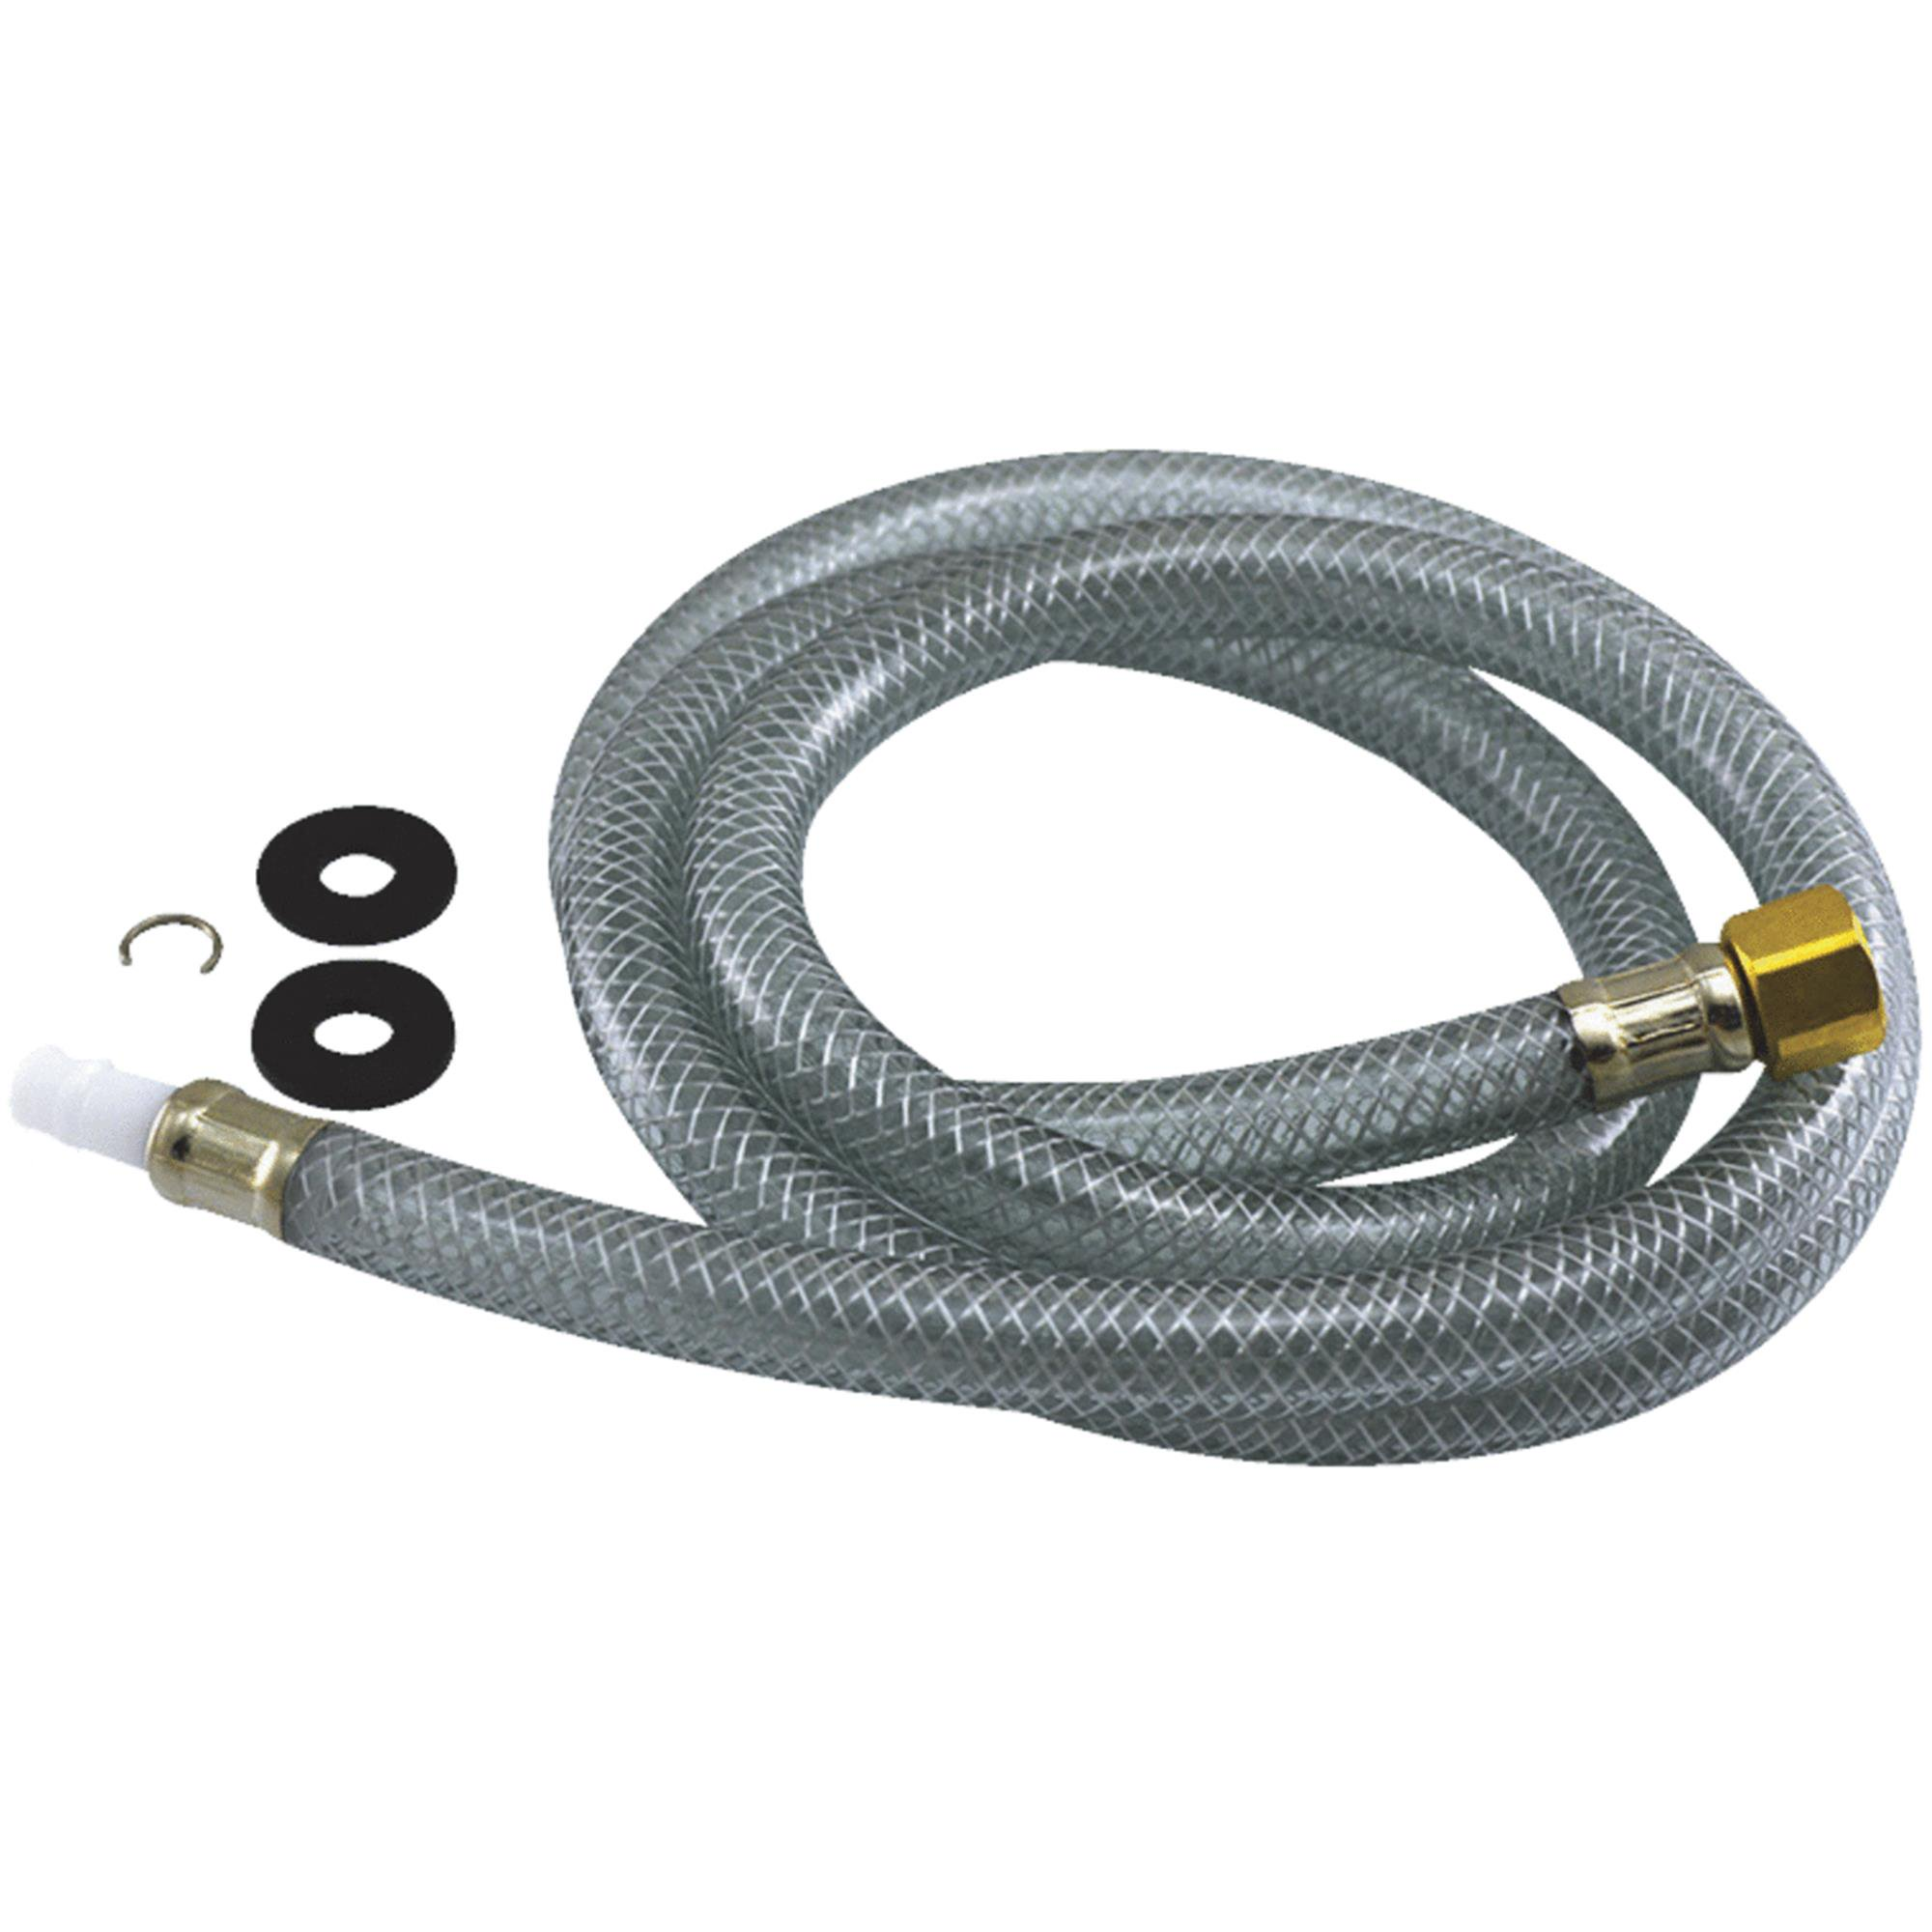 Replacement Sprayer Hose For Delta